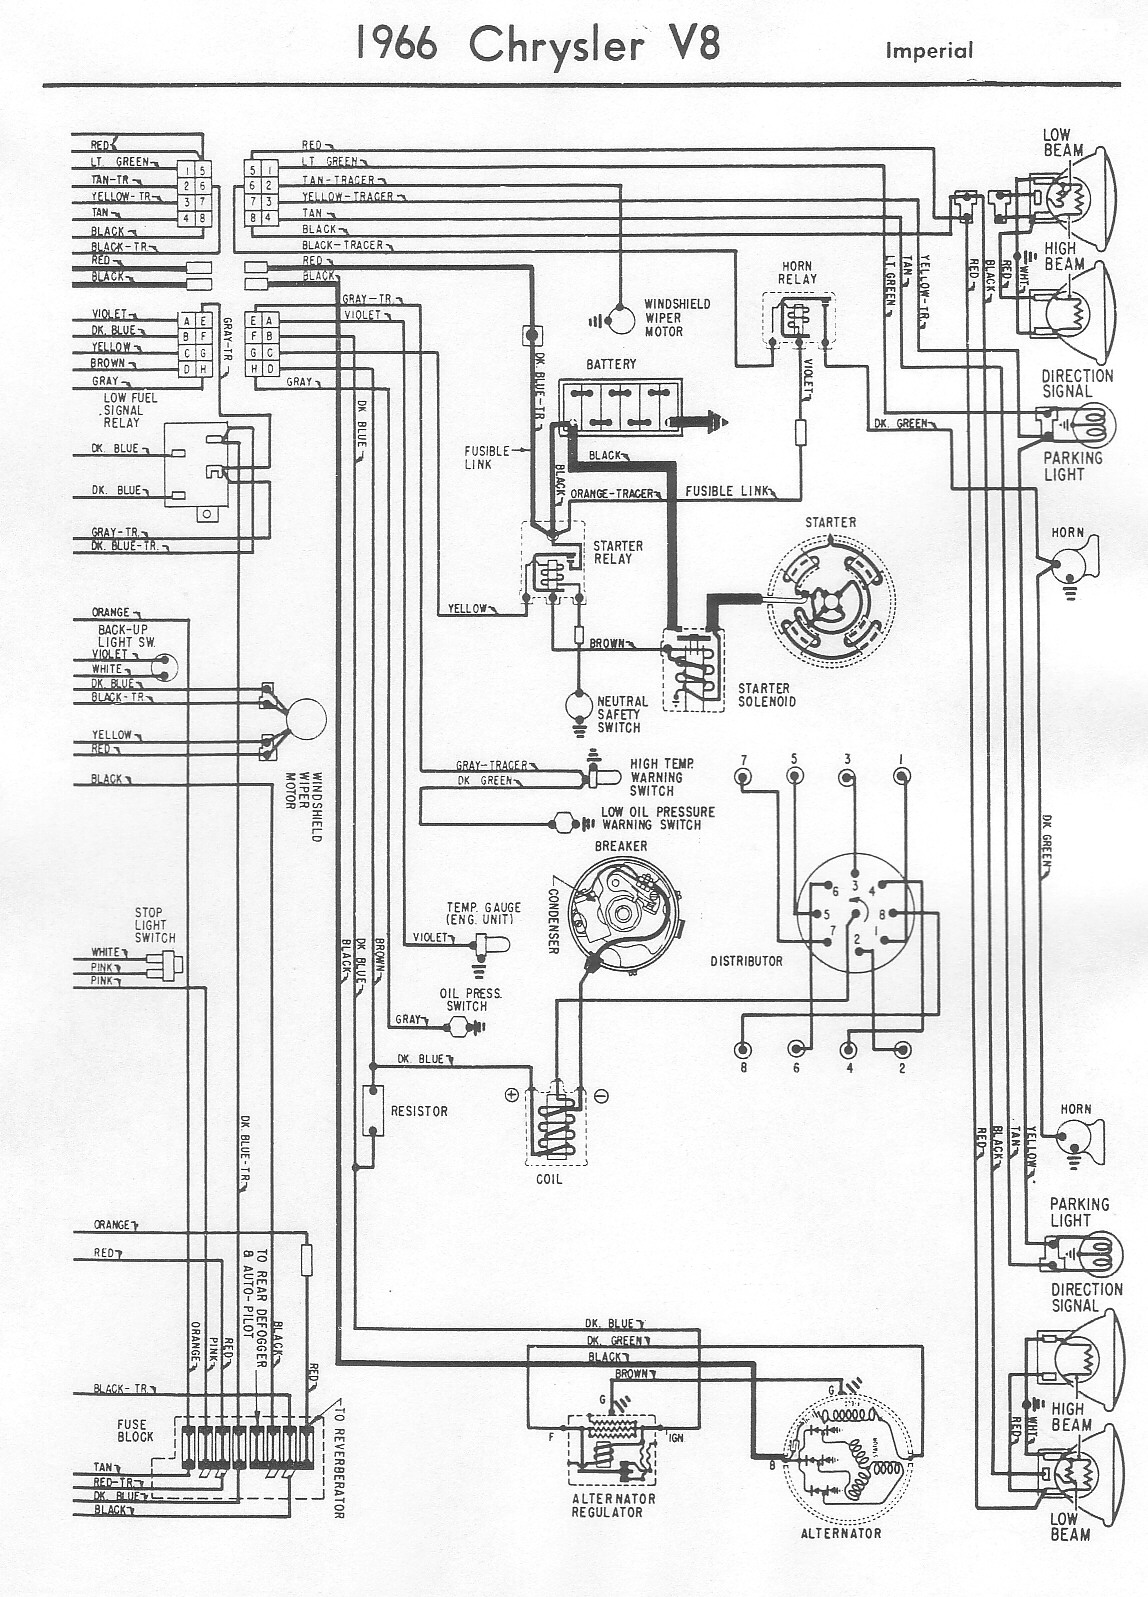 1968 chrysler wiring diagram simple wiring diagram schema1968 chrysler 300 wiring diagram wiring diagrams 1968 gto [ 1148 x 1597 Pixel ]